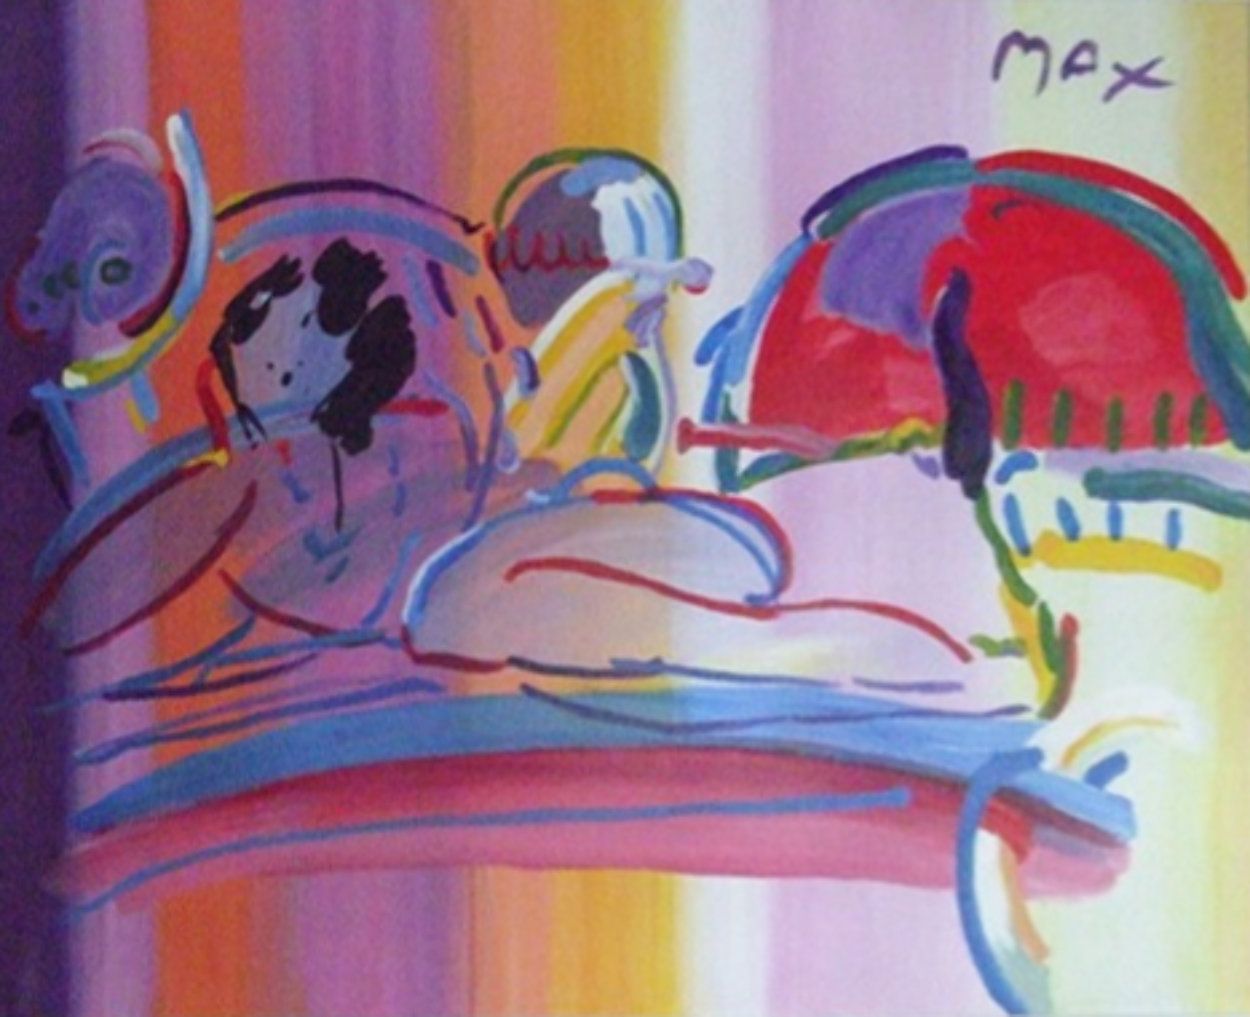 Reclining Nude 1992 37x49 Super Huge Original Painting by Peter Max